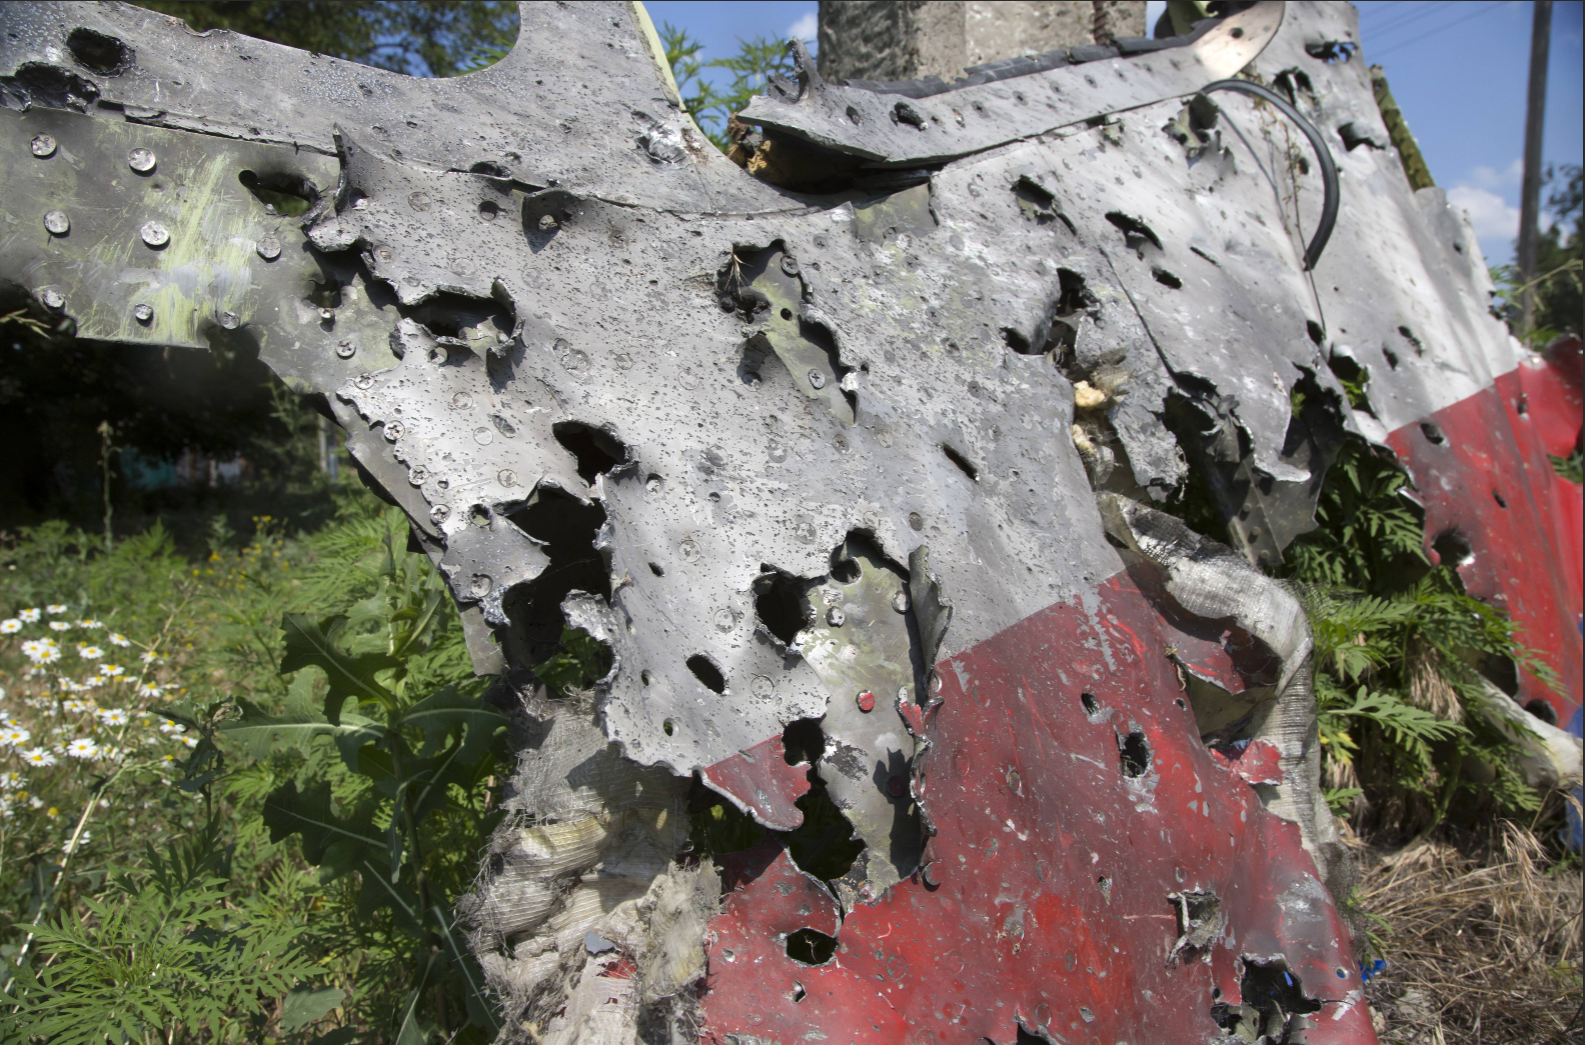 http://mixednews.ru/wp-content/uploads/2014/07/High-Res-MH17.png